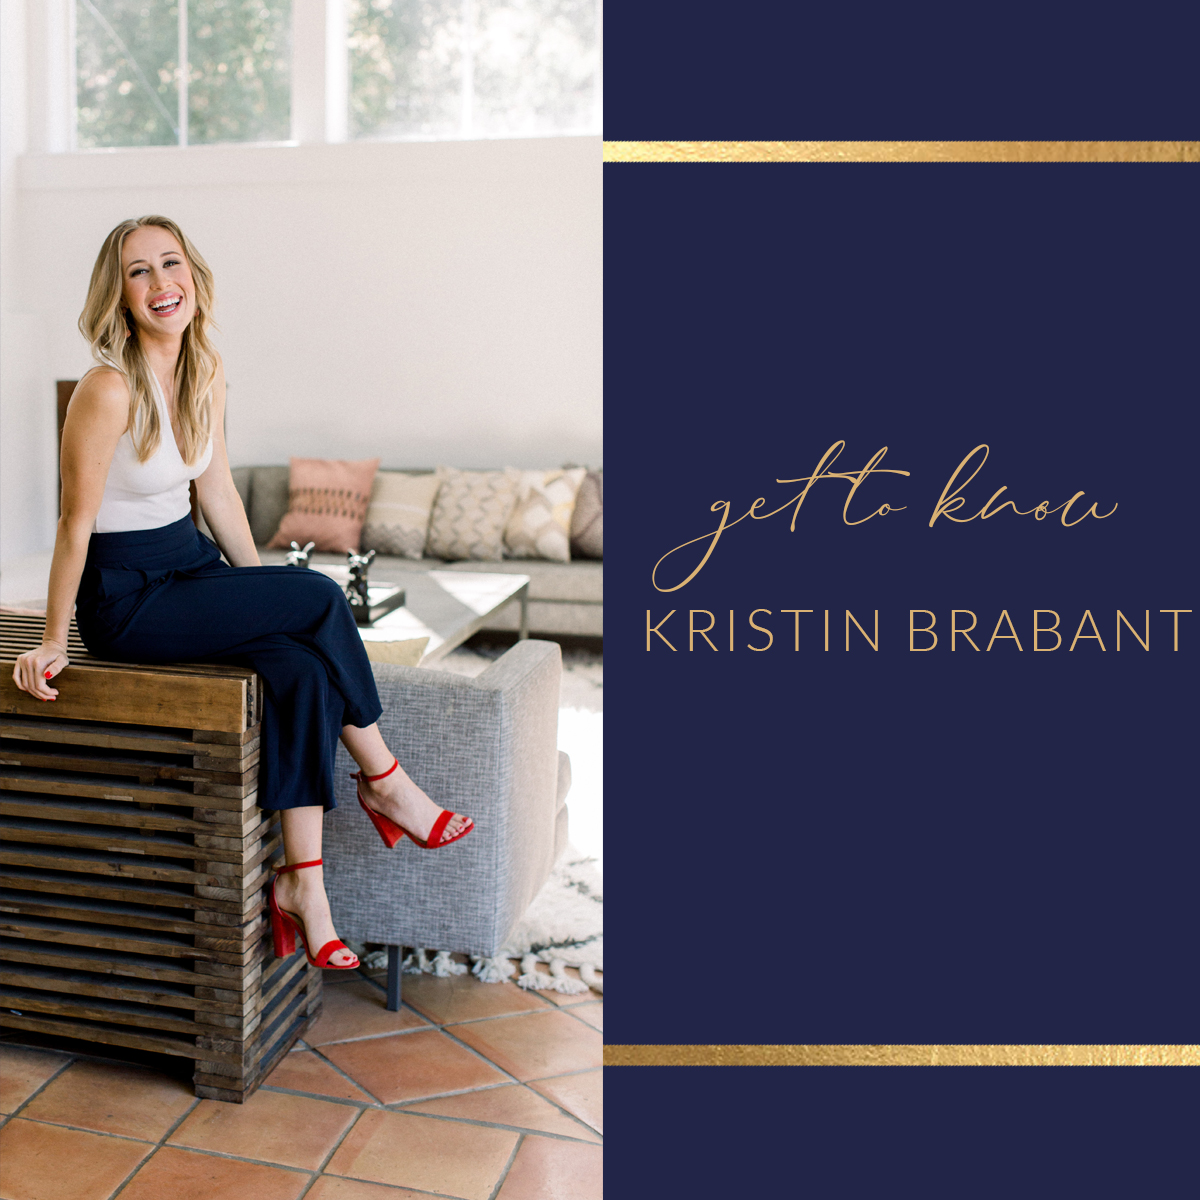 __button_ABOUT_kristin_brabant.jpg